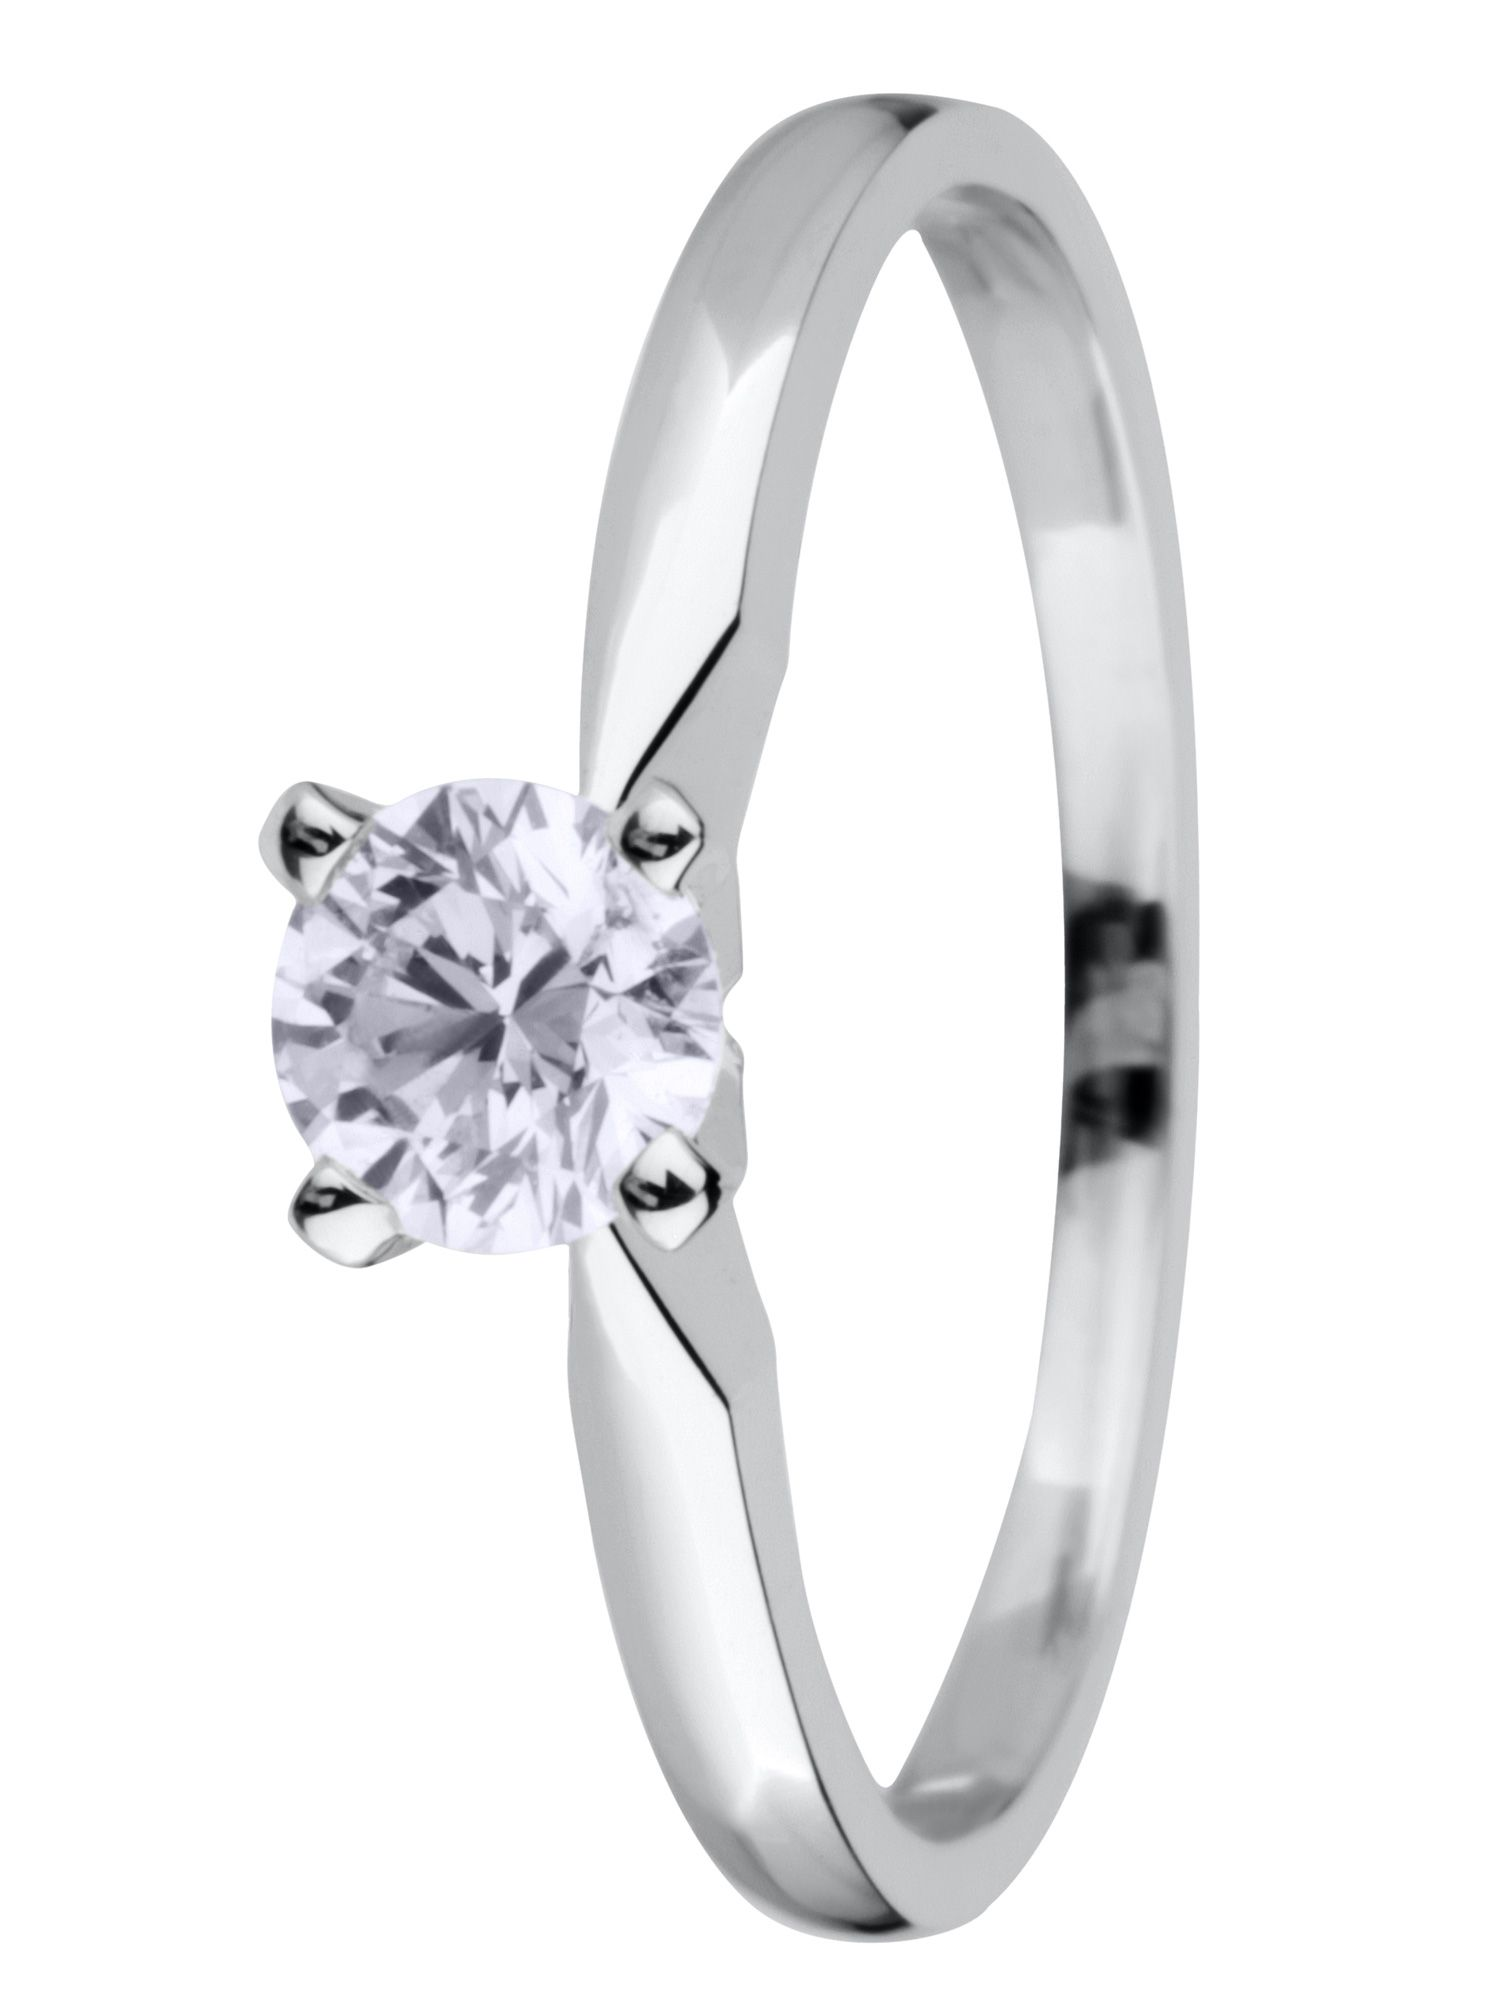 Goldsmiths 18ct gold solitaire 0.50ct diamond ring, White Gold